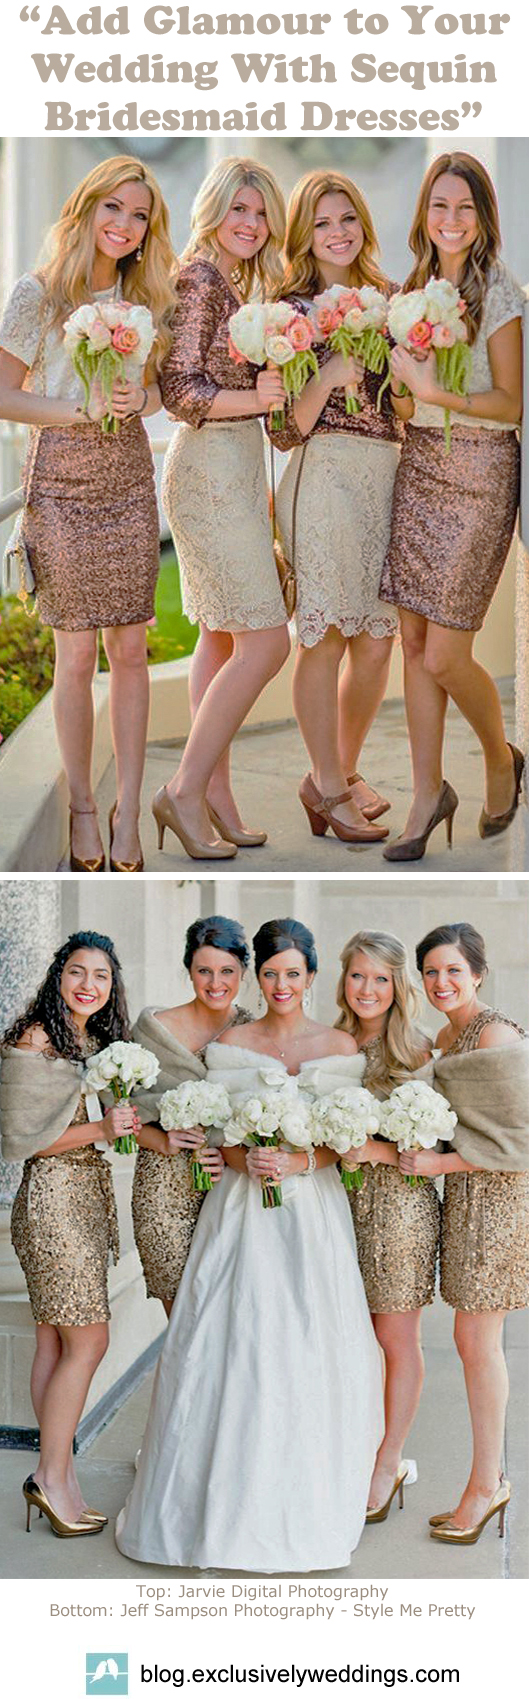 Tailored Bridesmaid Dresses with Sequins